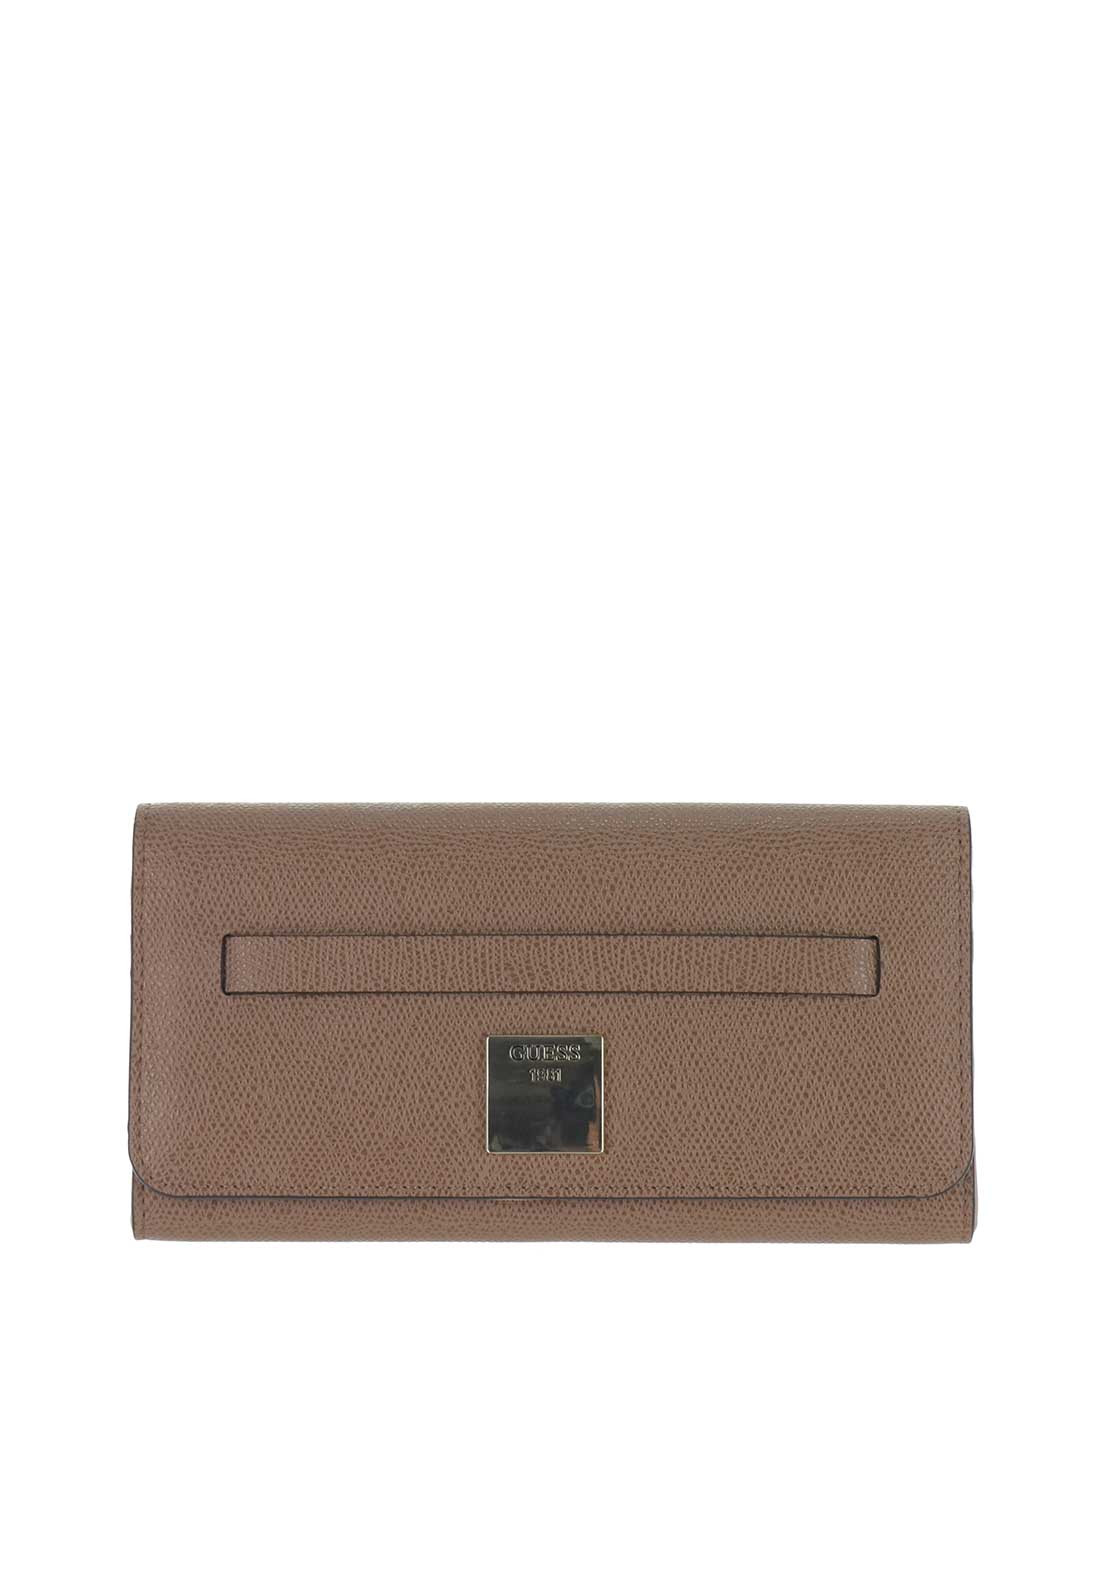 Guess Christy Flap Close Wallet, Brown